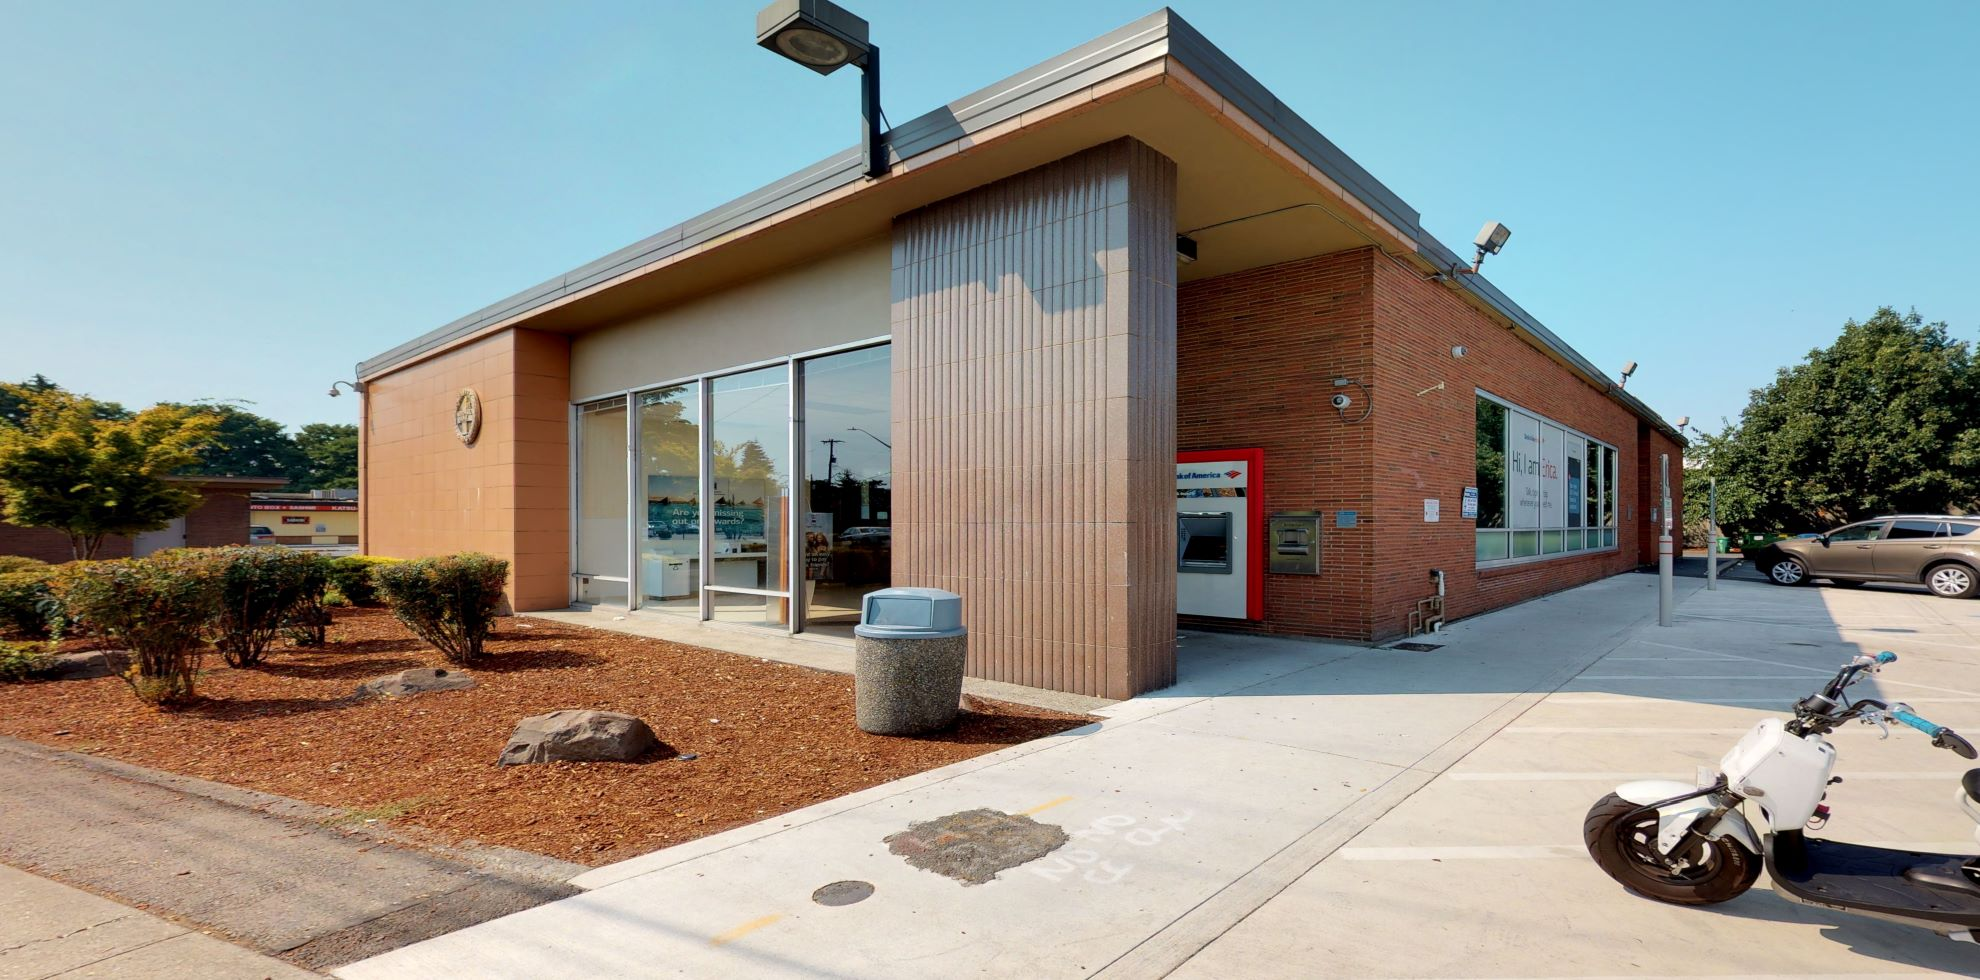 Bank of America financial center with drive-thru ATM | 1112 S Bailey St, Seattle, WA 98108